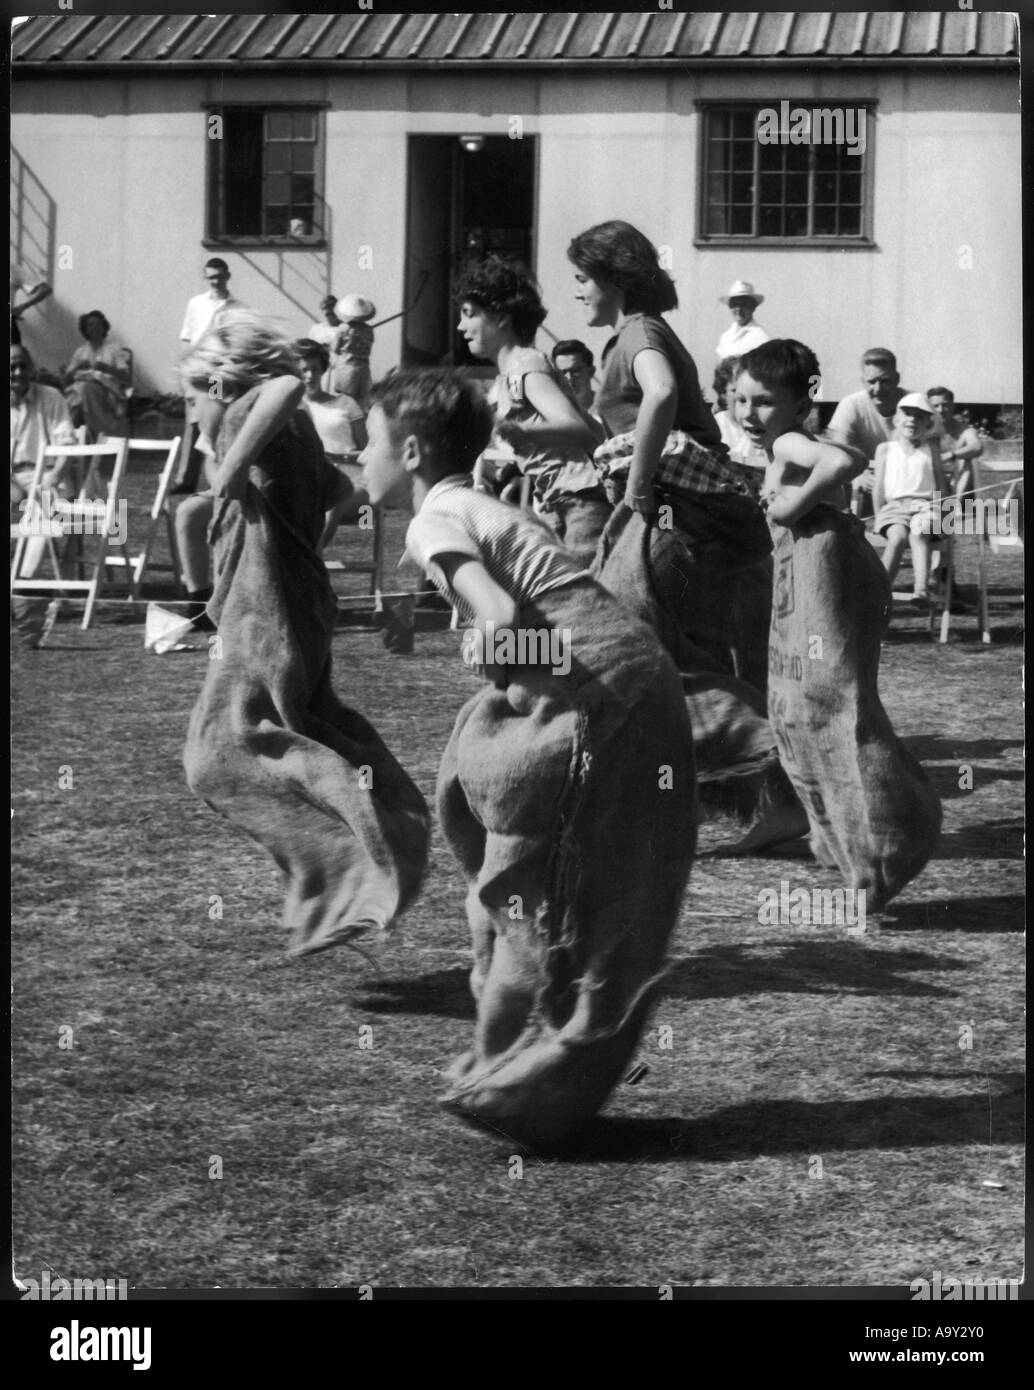 Sports Day Sack Race 50s - Stock Image